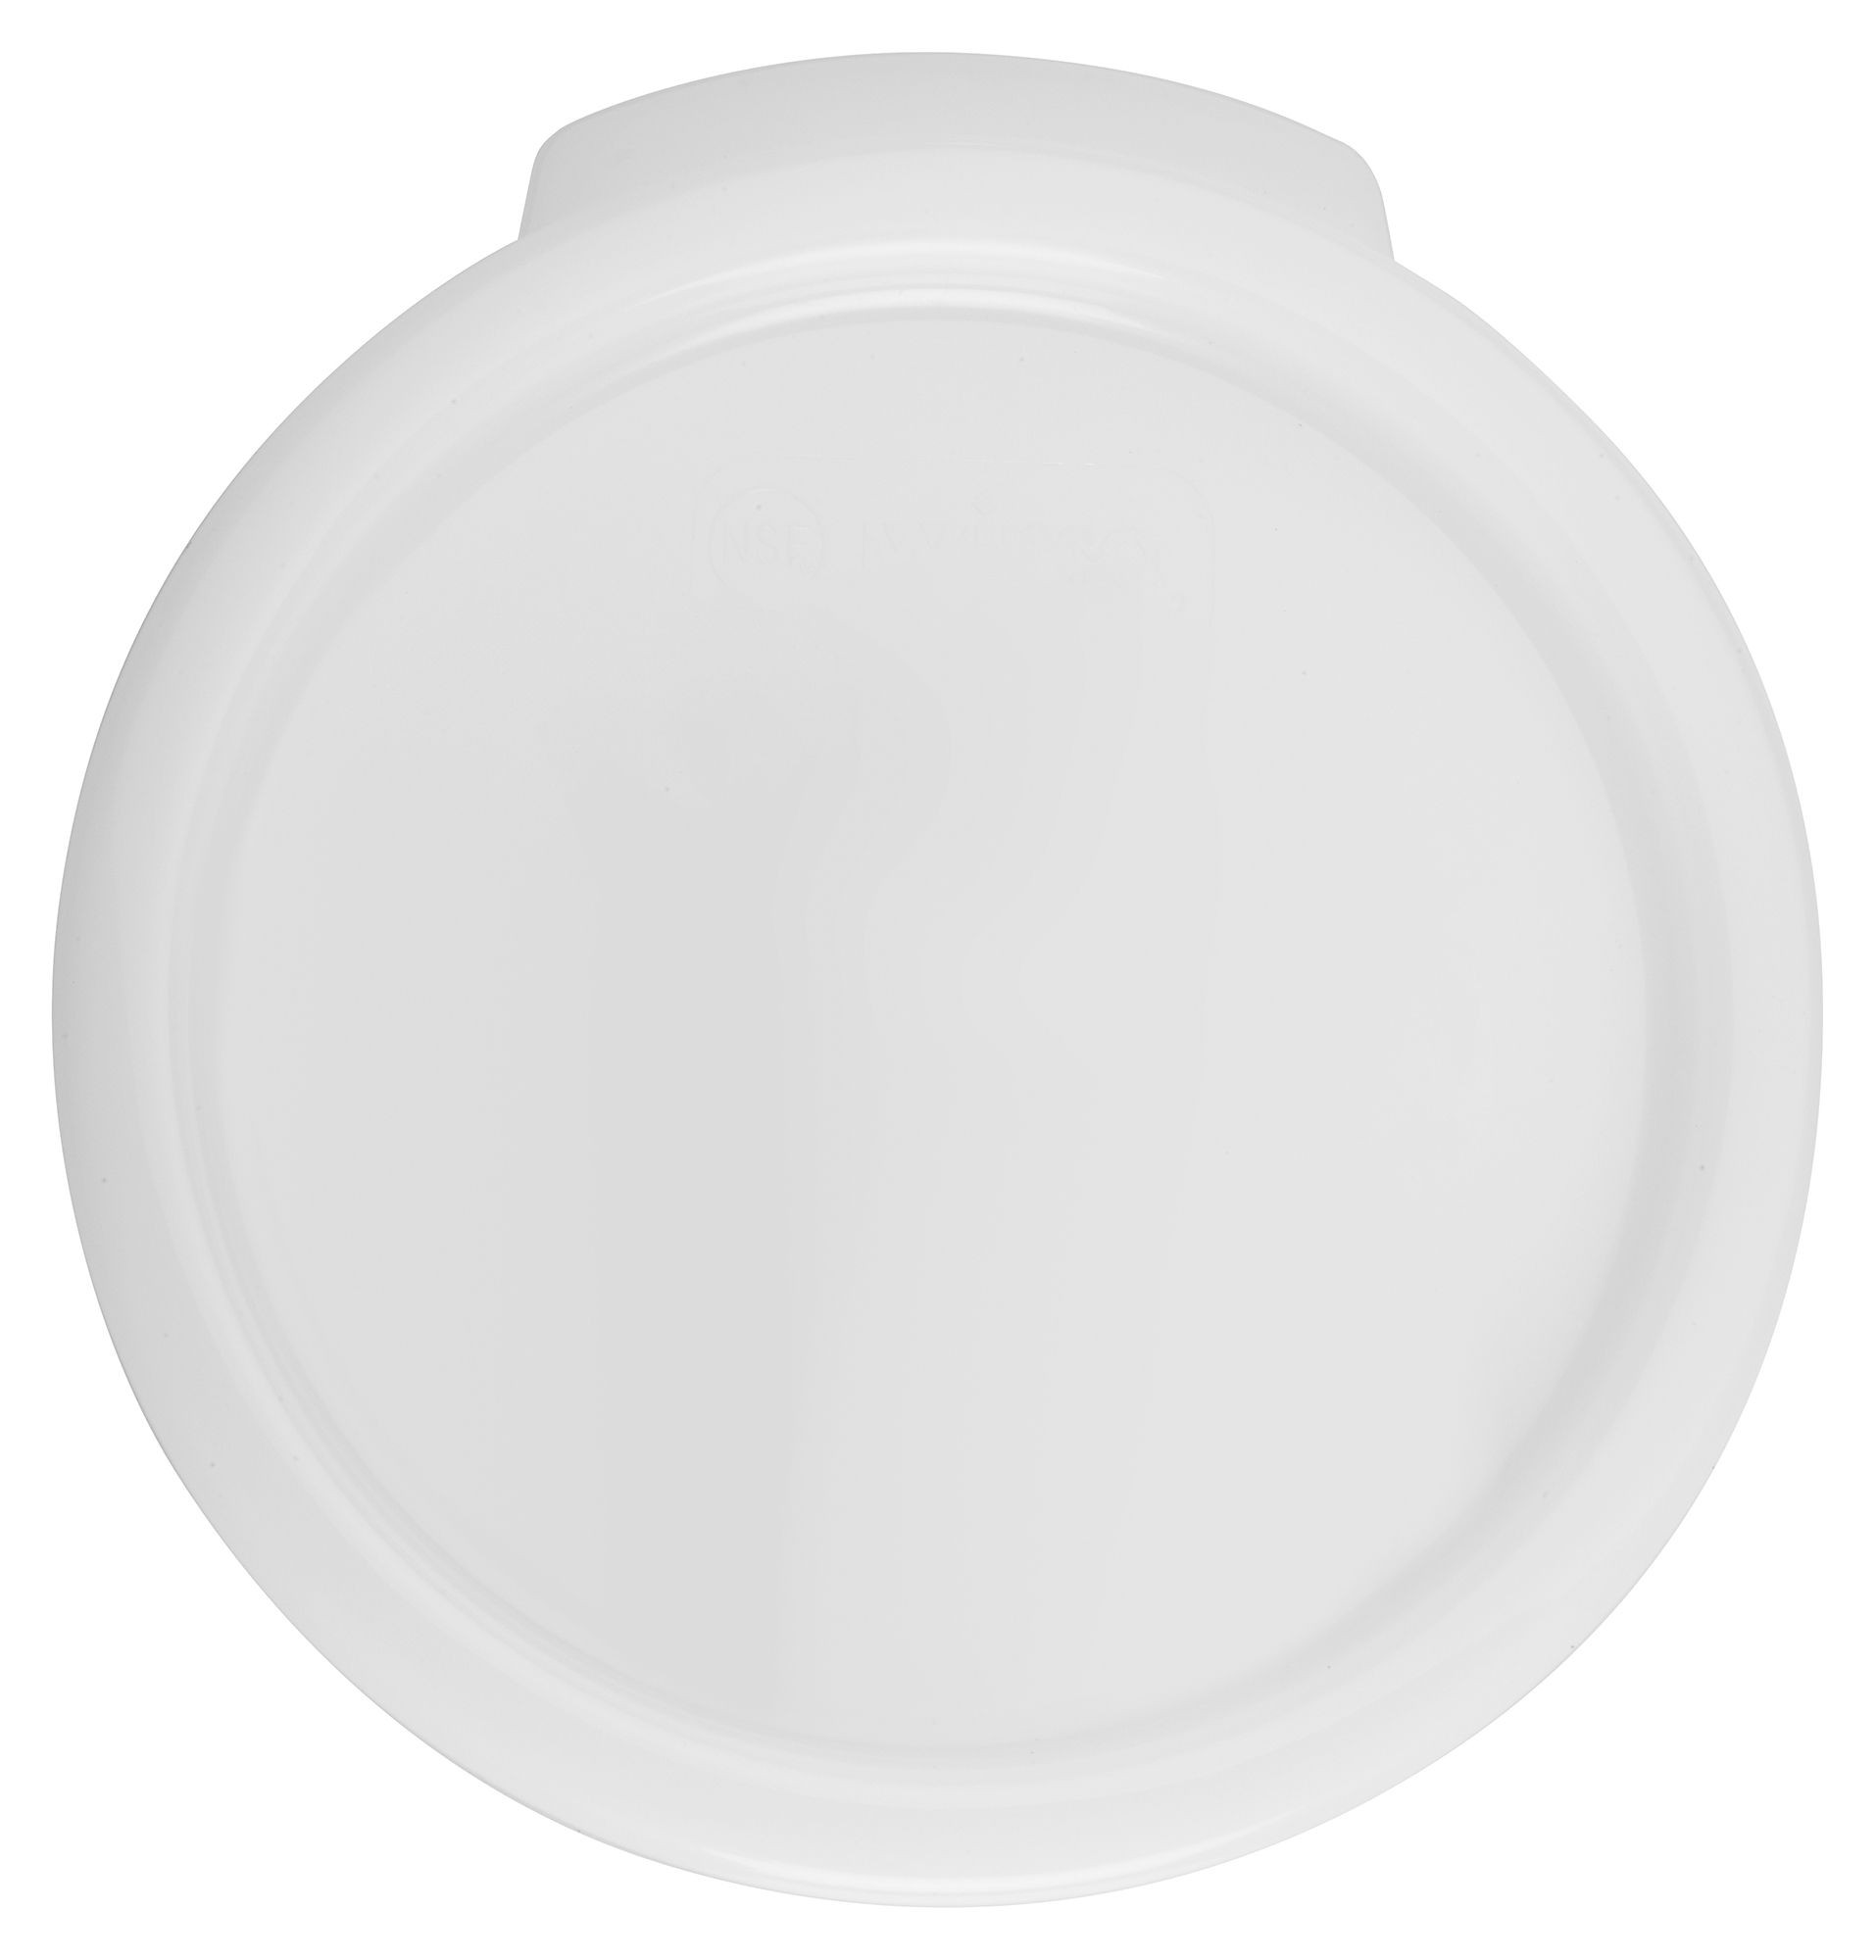 Winco PPRC-24C White Round Cover fits 2 and 4 Qt. Storage Containers